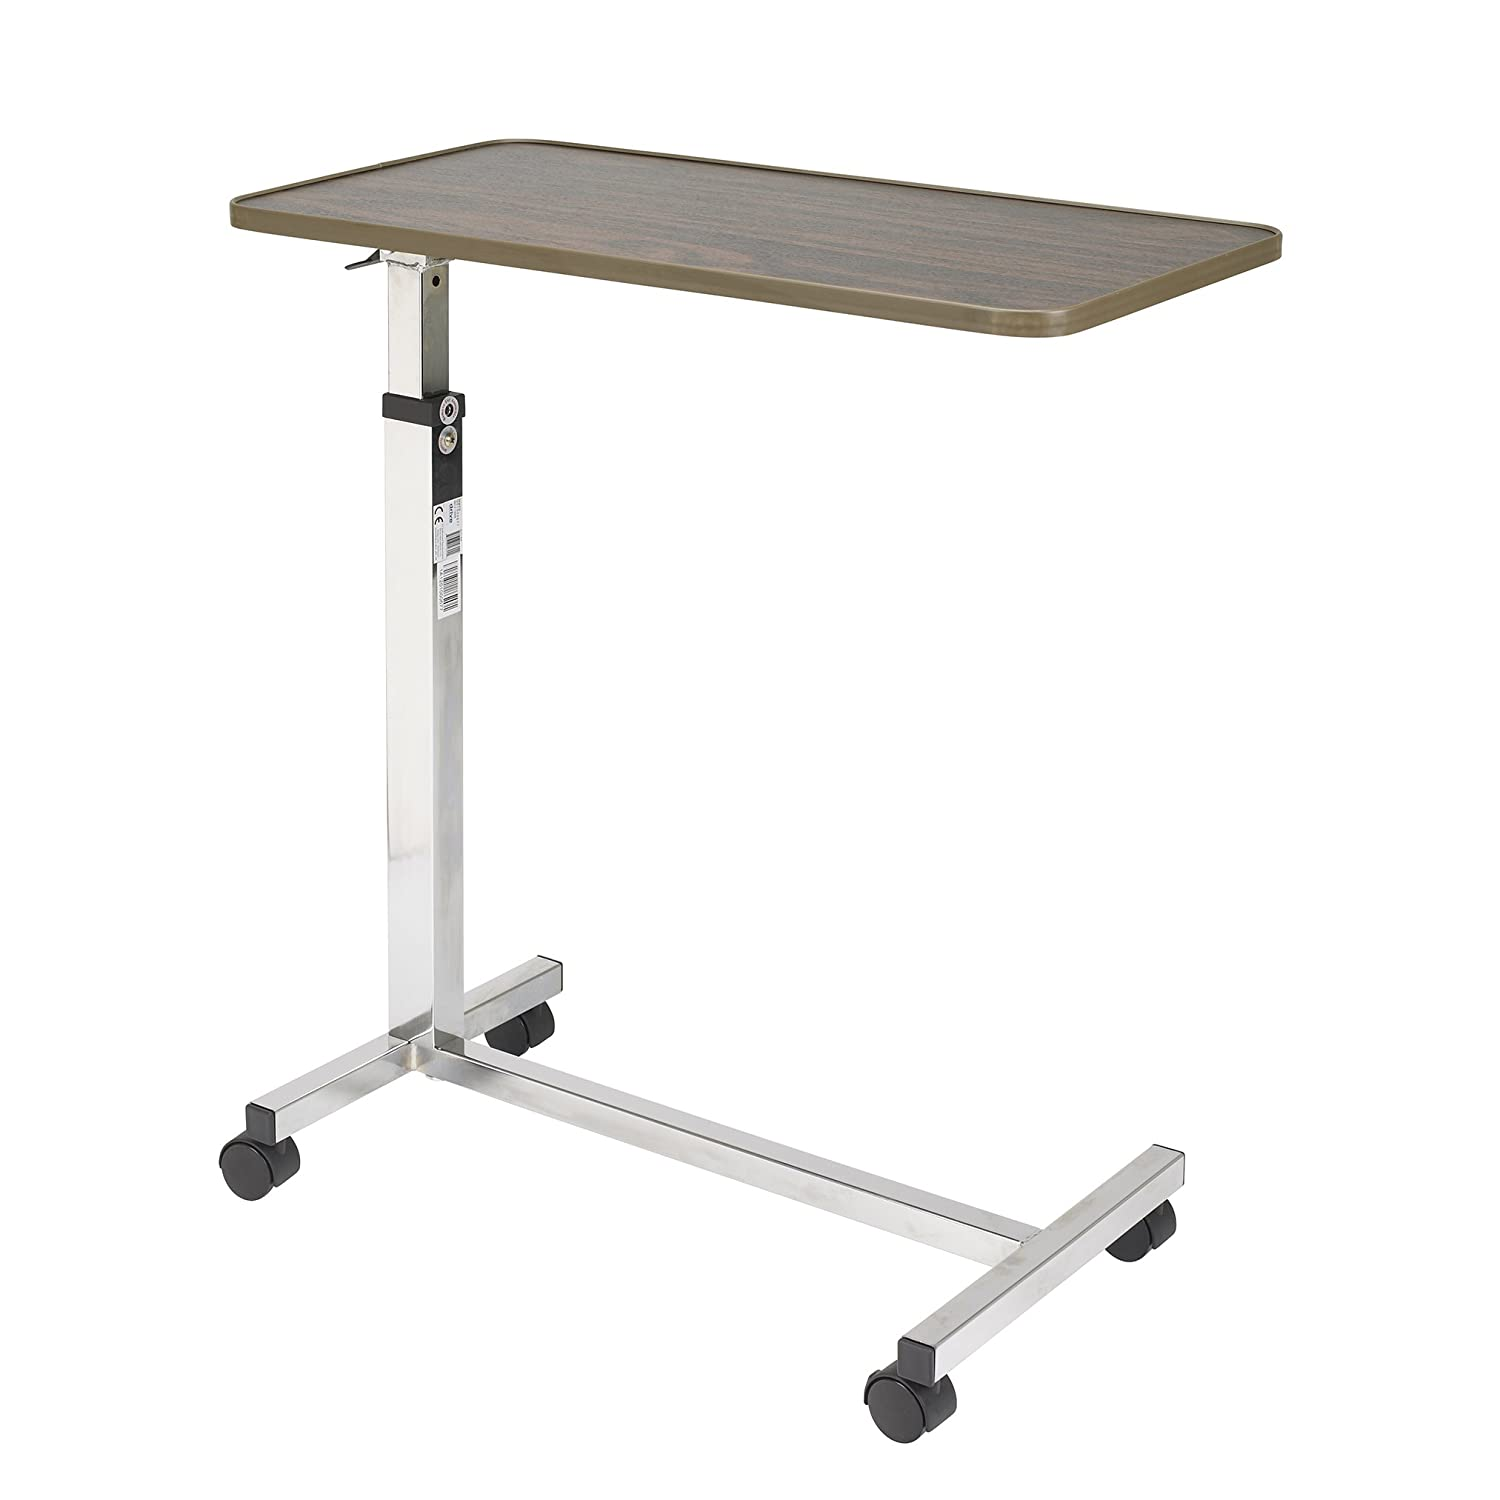 co adjustable care over top finger raises bed overbed table just personal health angle deluxe and dp with twin height amazon uk